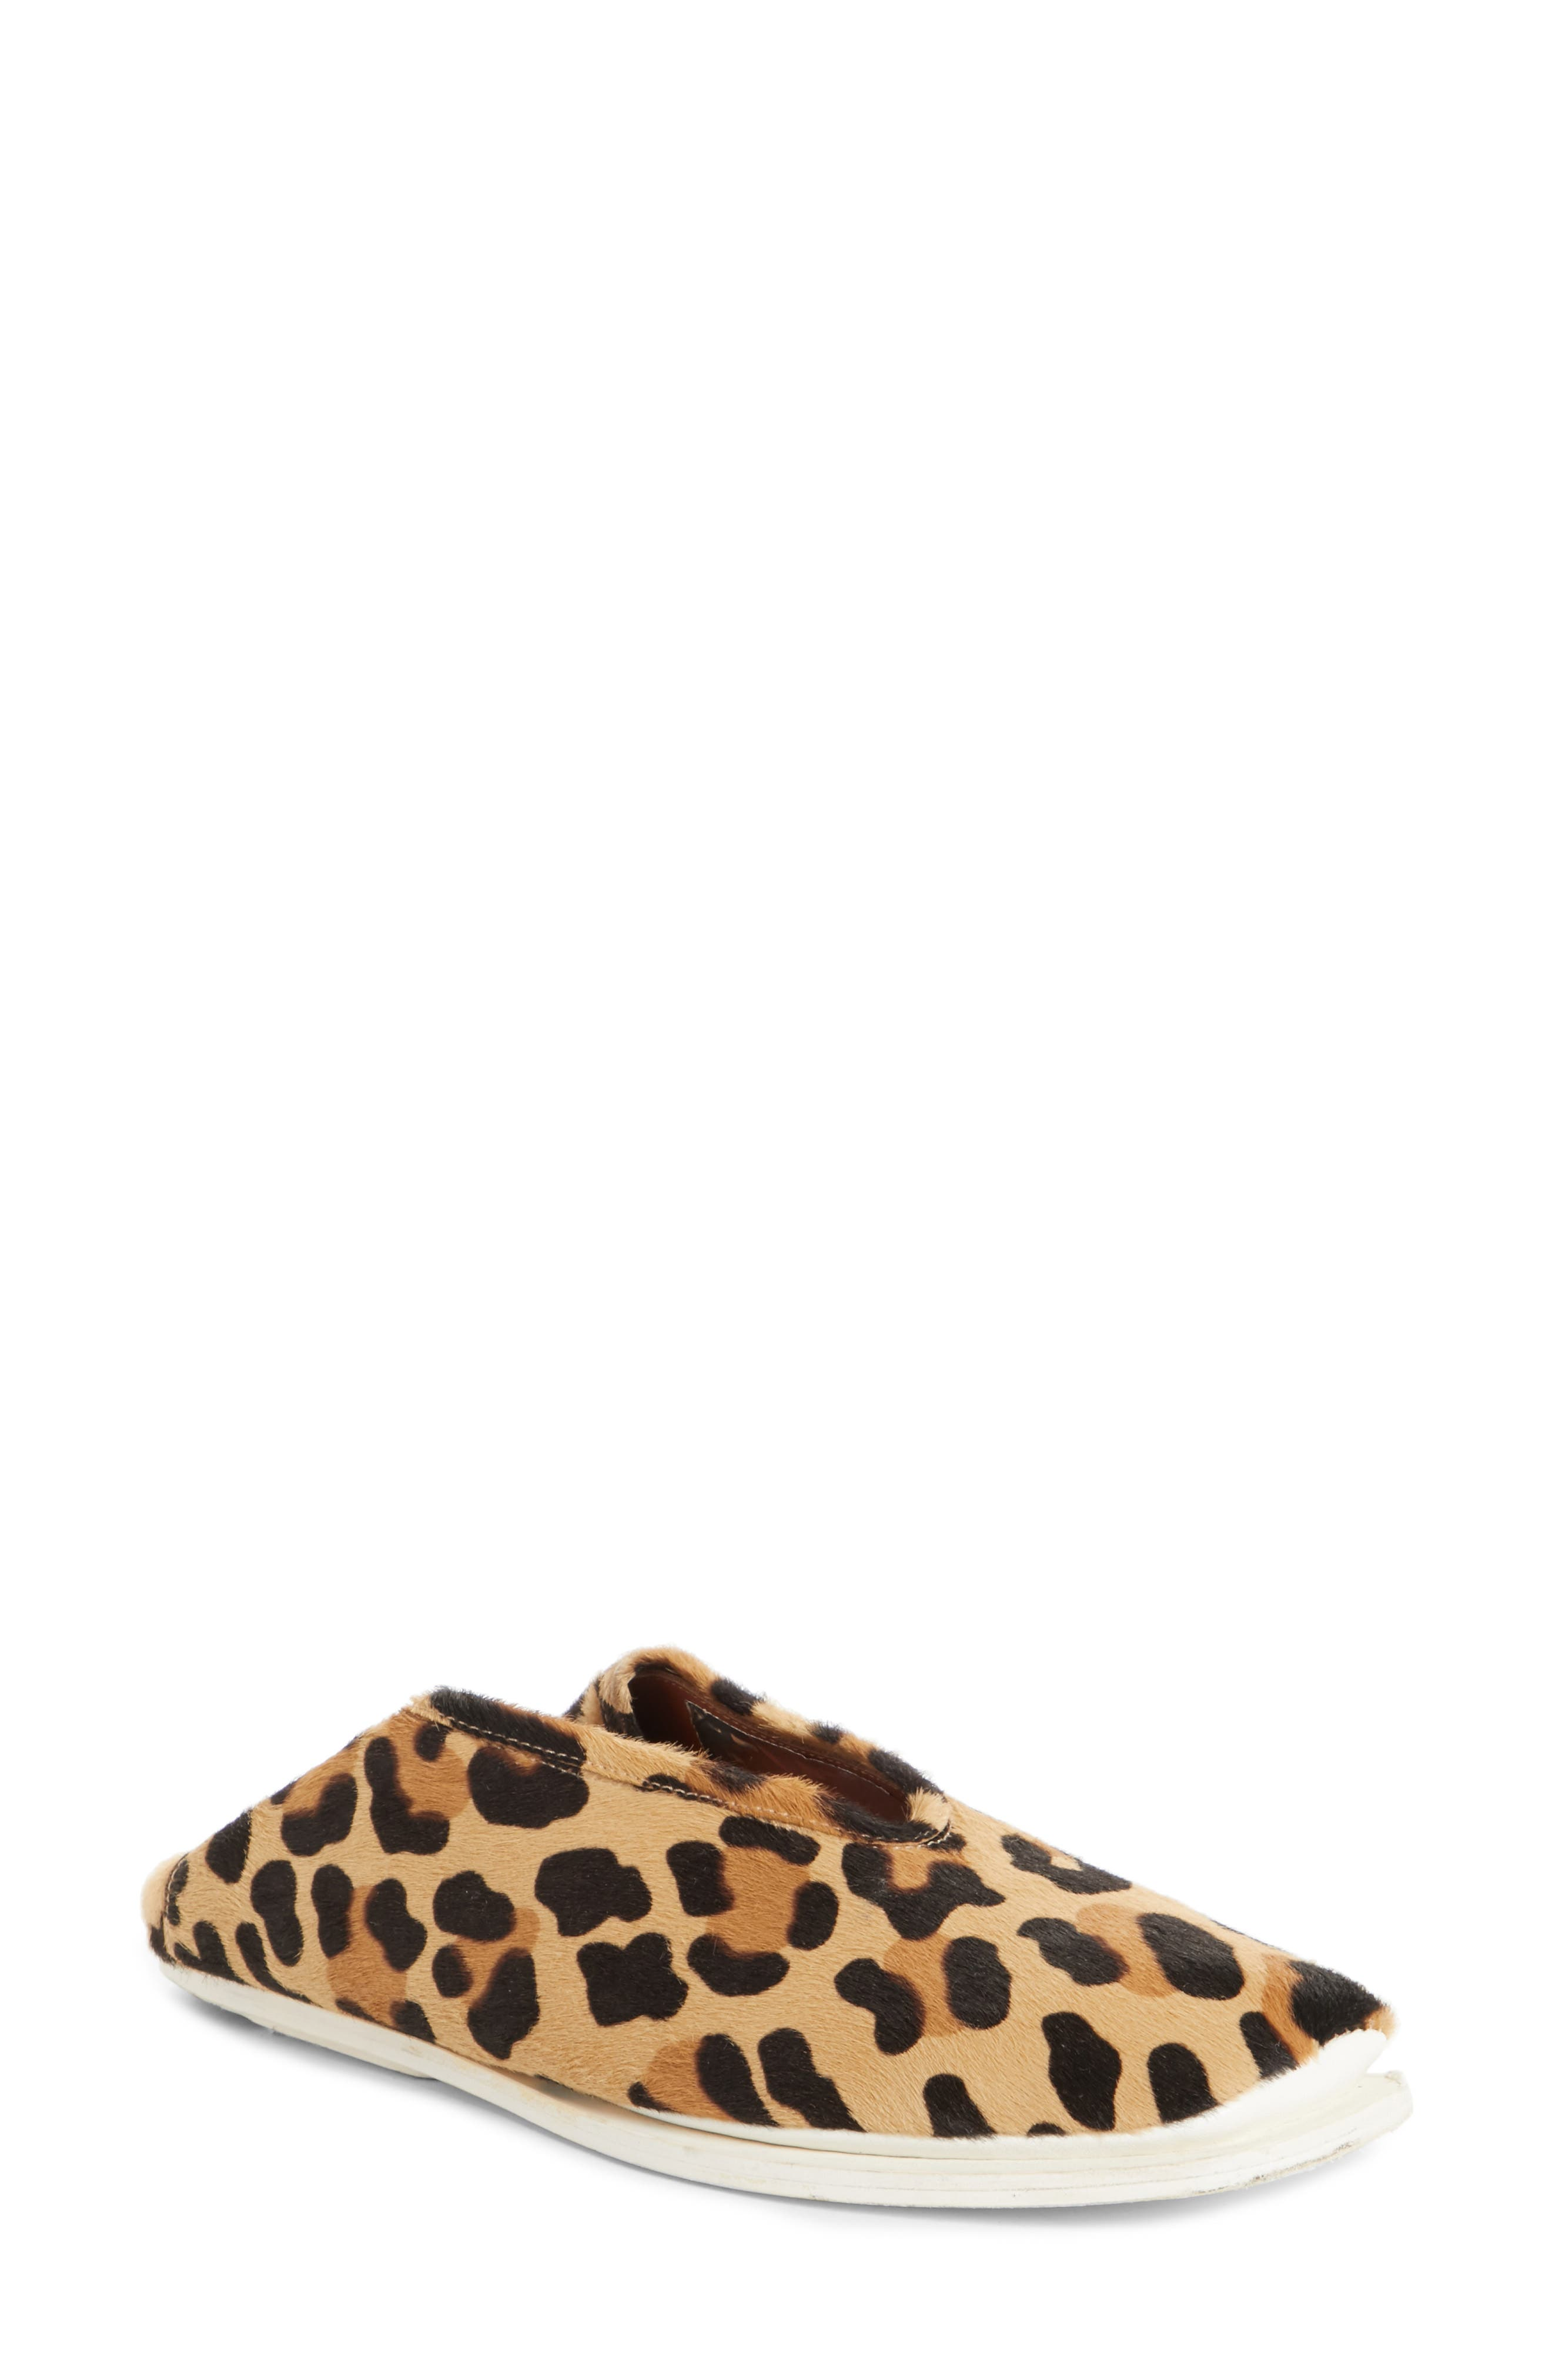 PSWL Genuine Calf Hair Convertible Loafer,                             Main thumbnail 1, color,                             Leopard Print